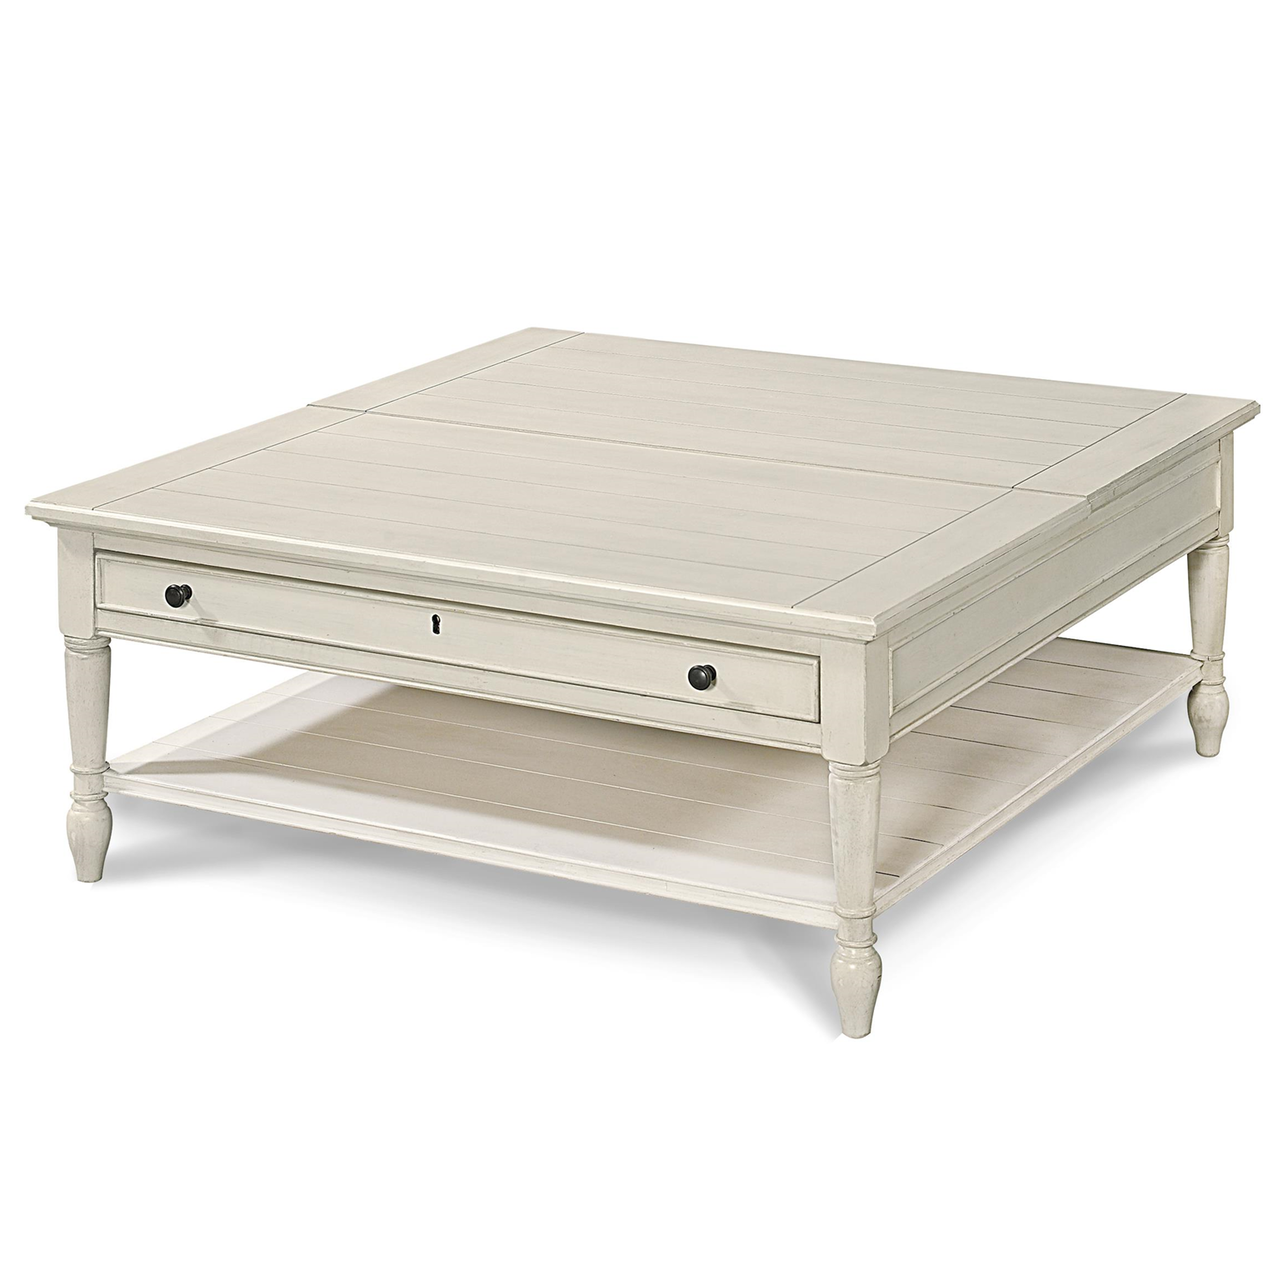 country-chic white wood square coffee table with lift top | zin home